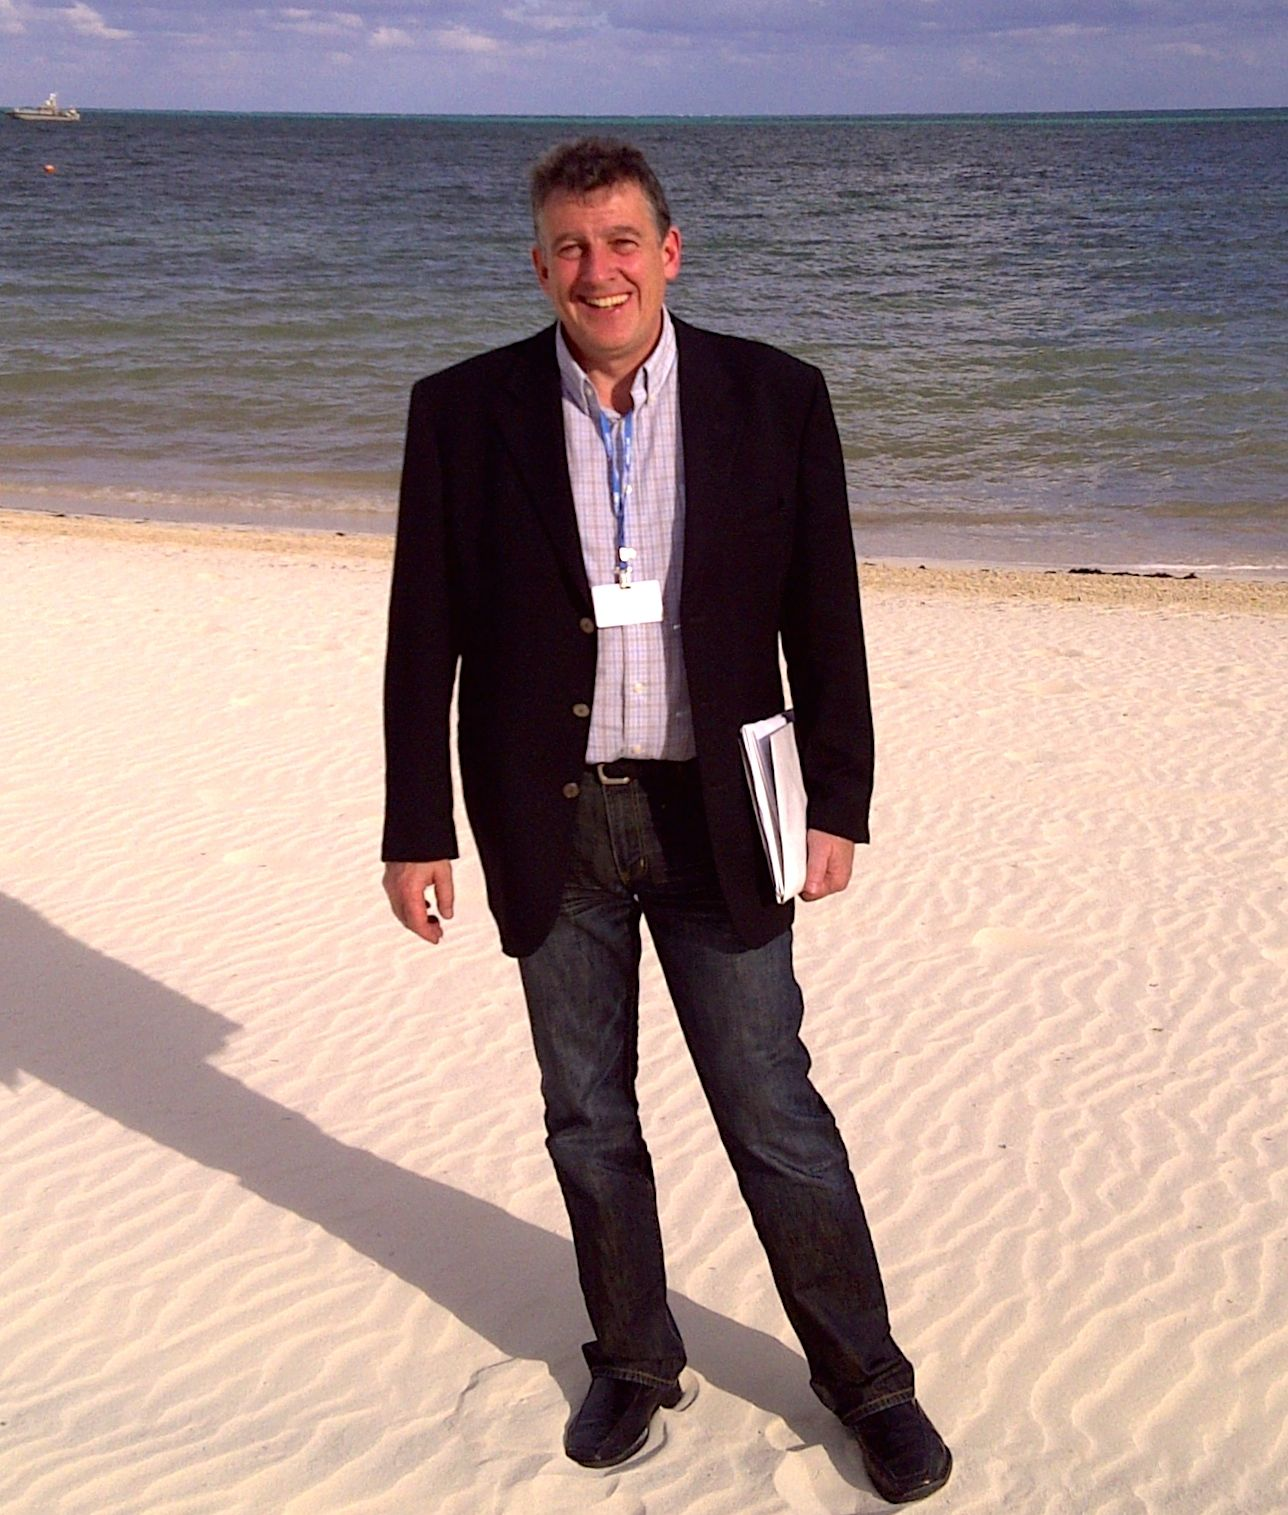 Tom attending UN climate sessions in Cancun, MX.